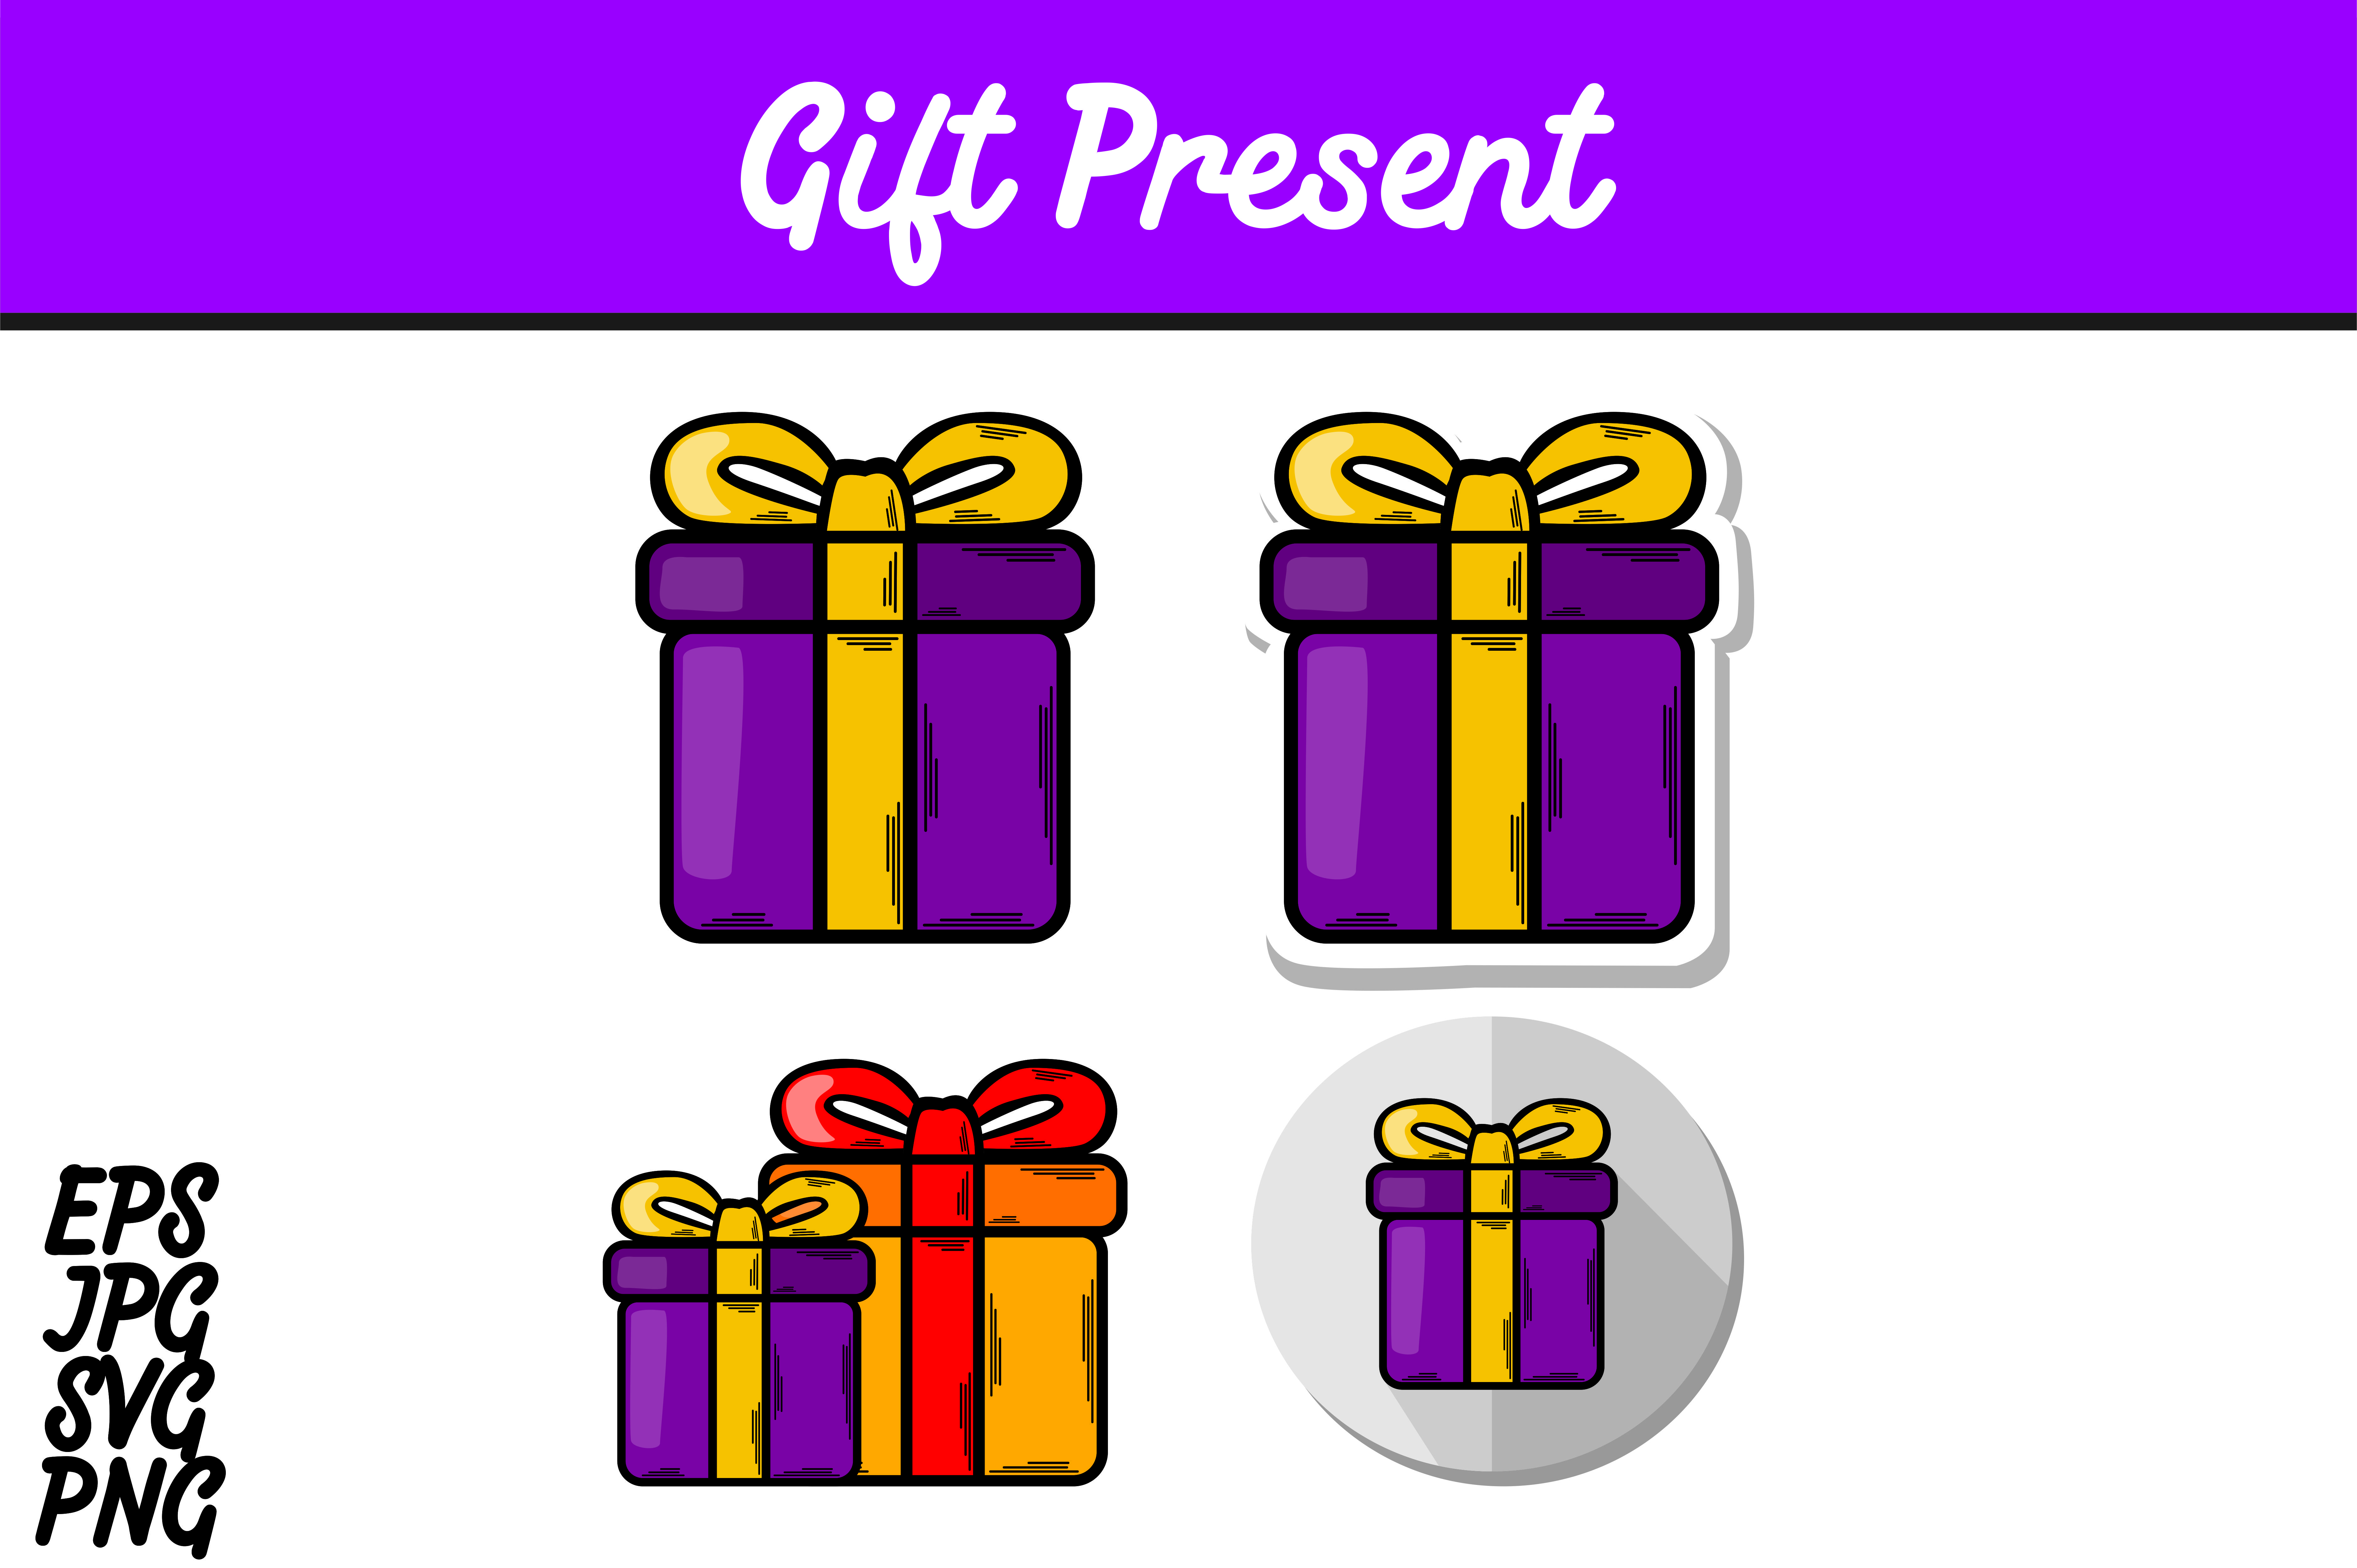 Download Free Bundle Purple Gift Present Set Svg Vector Image Graphic By Arief for Cricut Explore, Silhouette and other cutting machines.